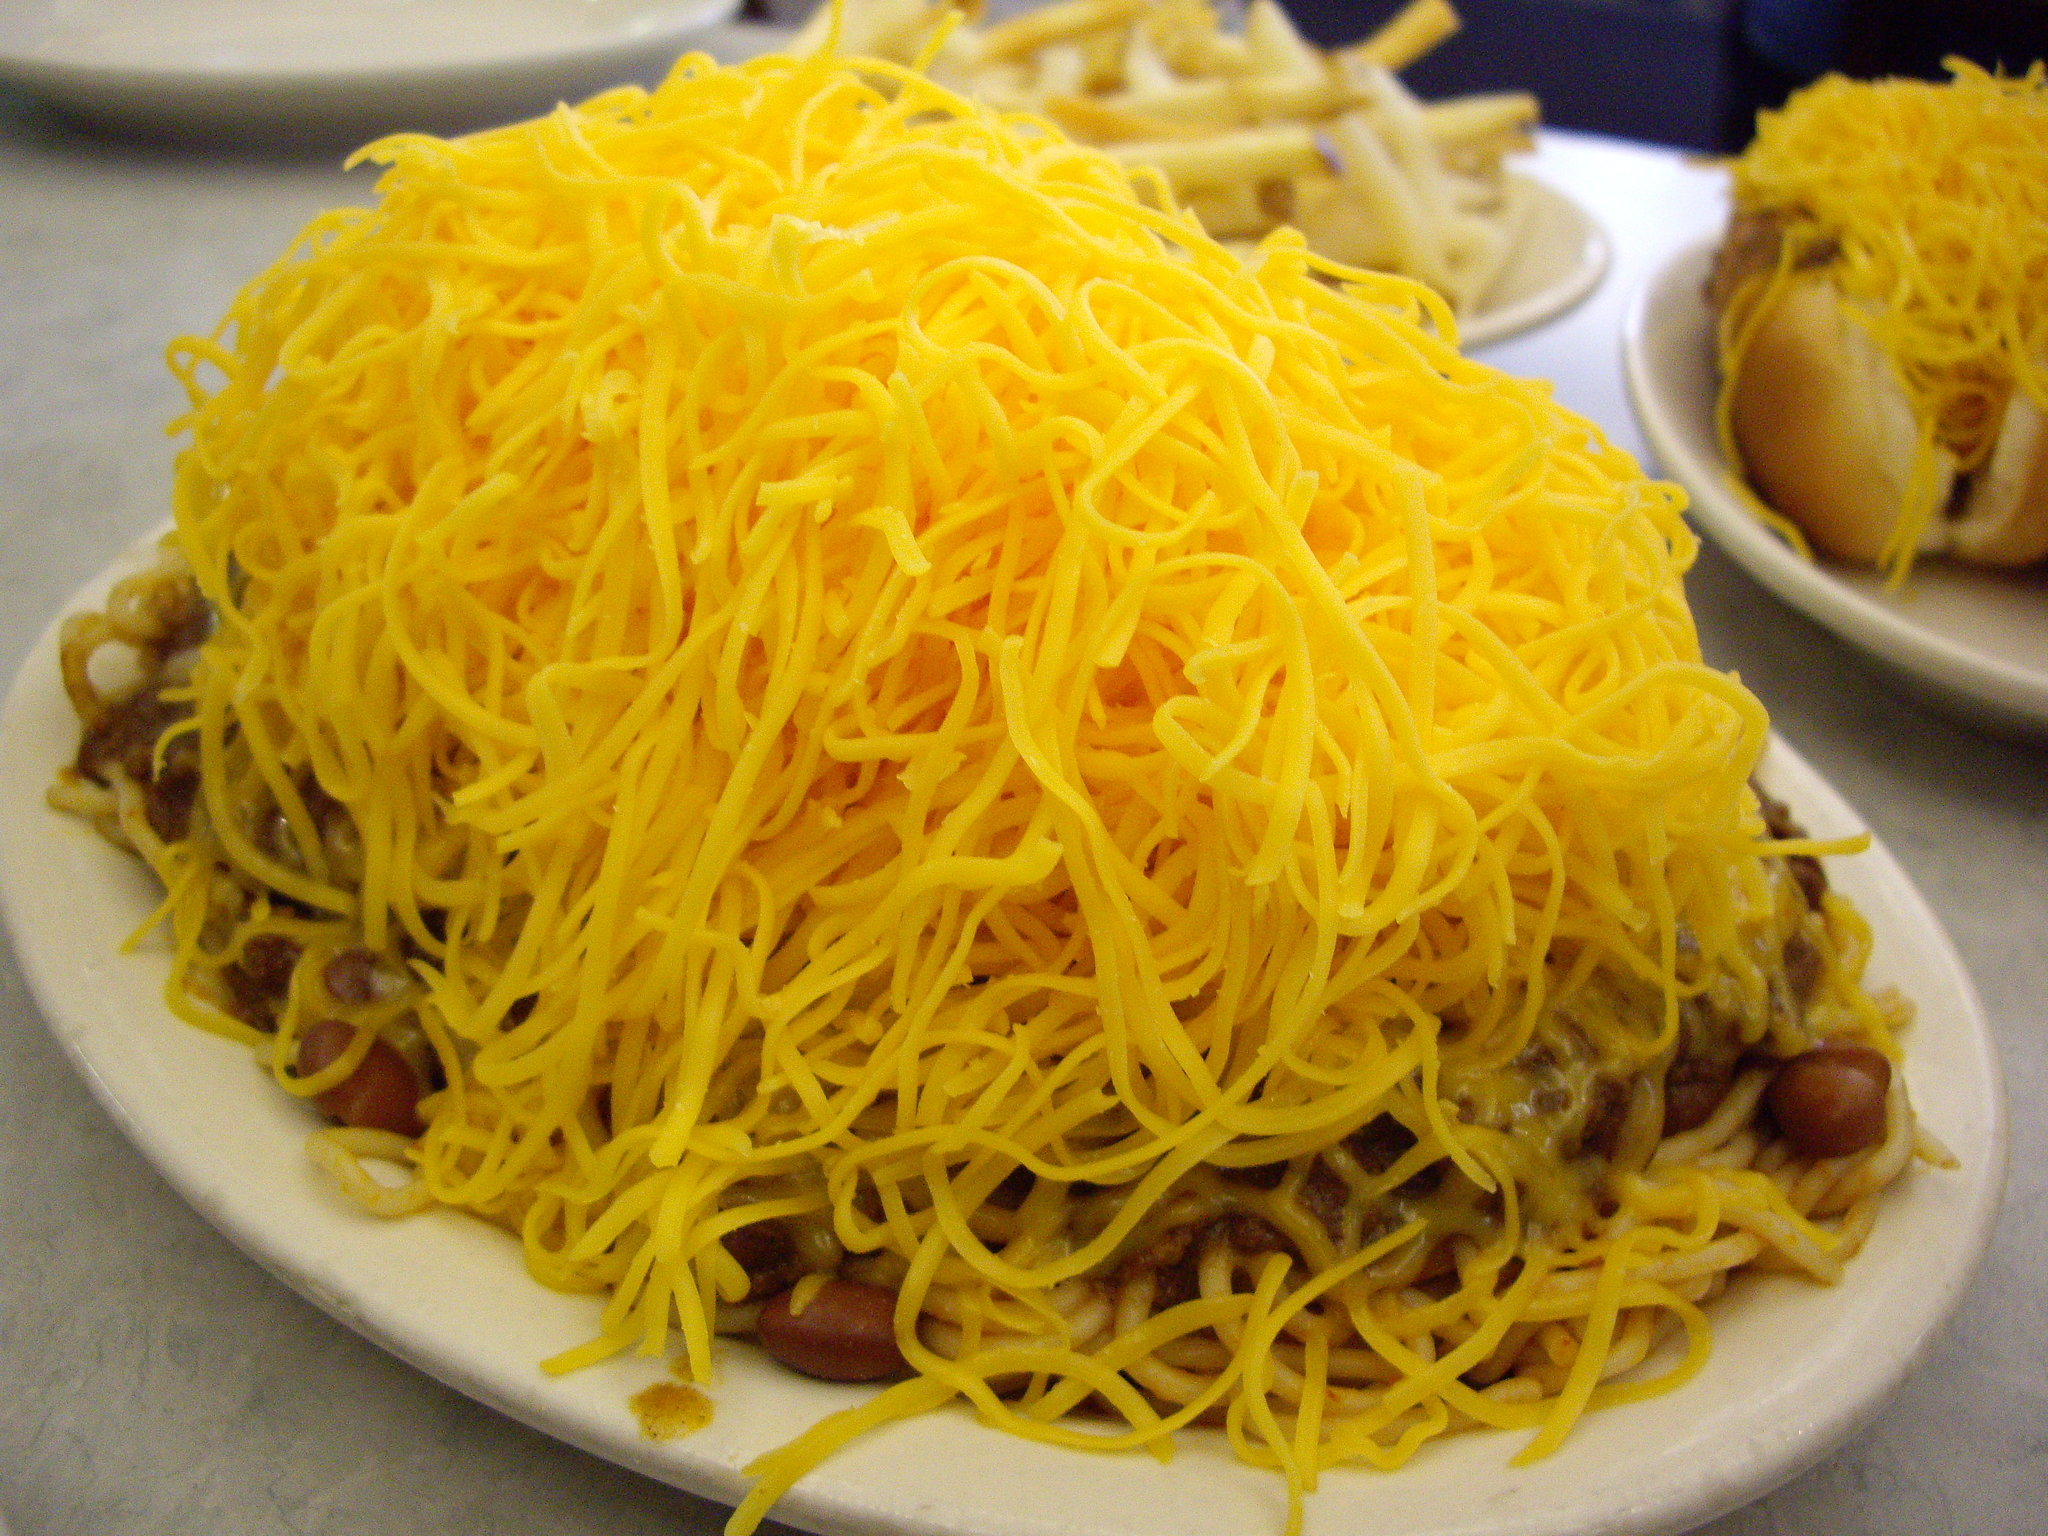 Ohio: Cincinnati Chili | Taste the States: 50 Iconic American Foods ...